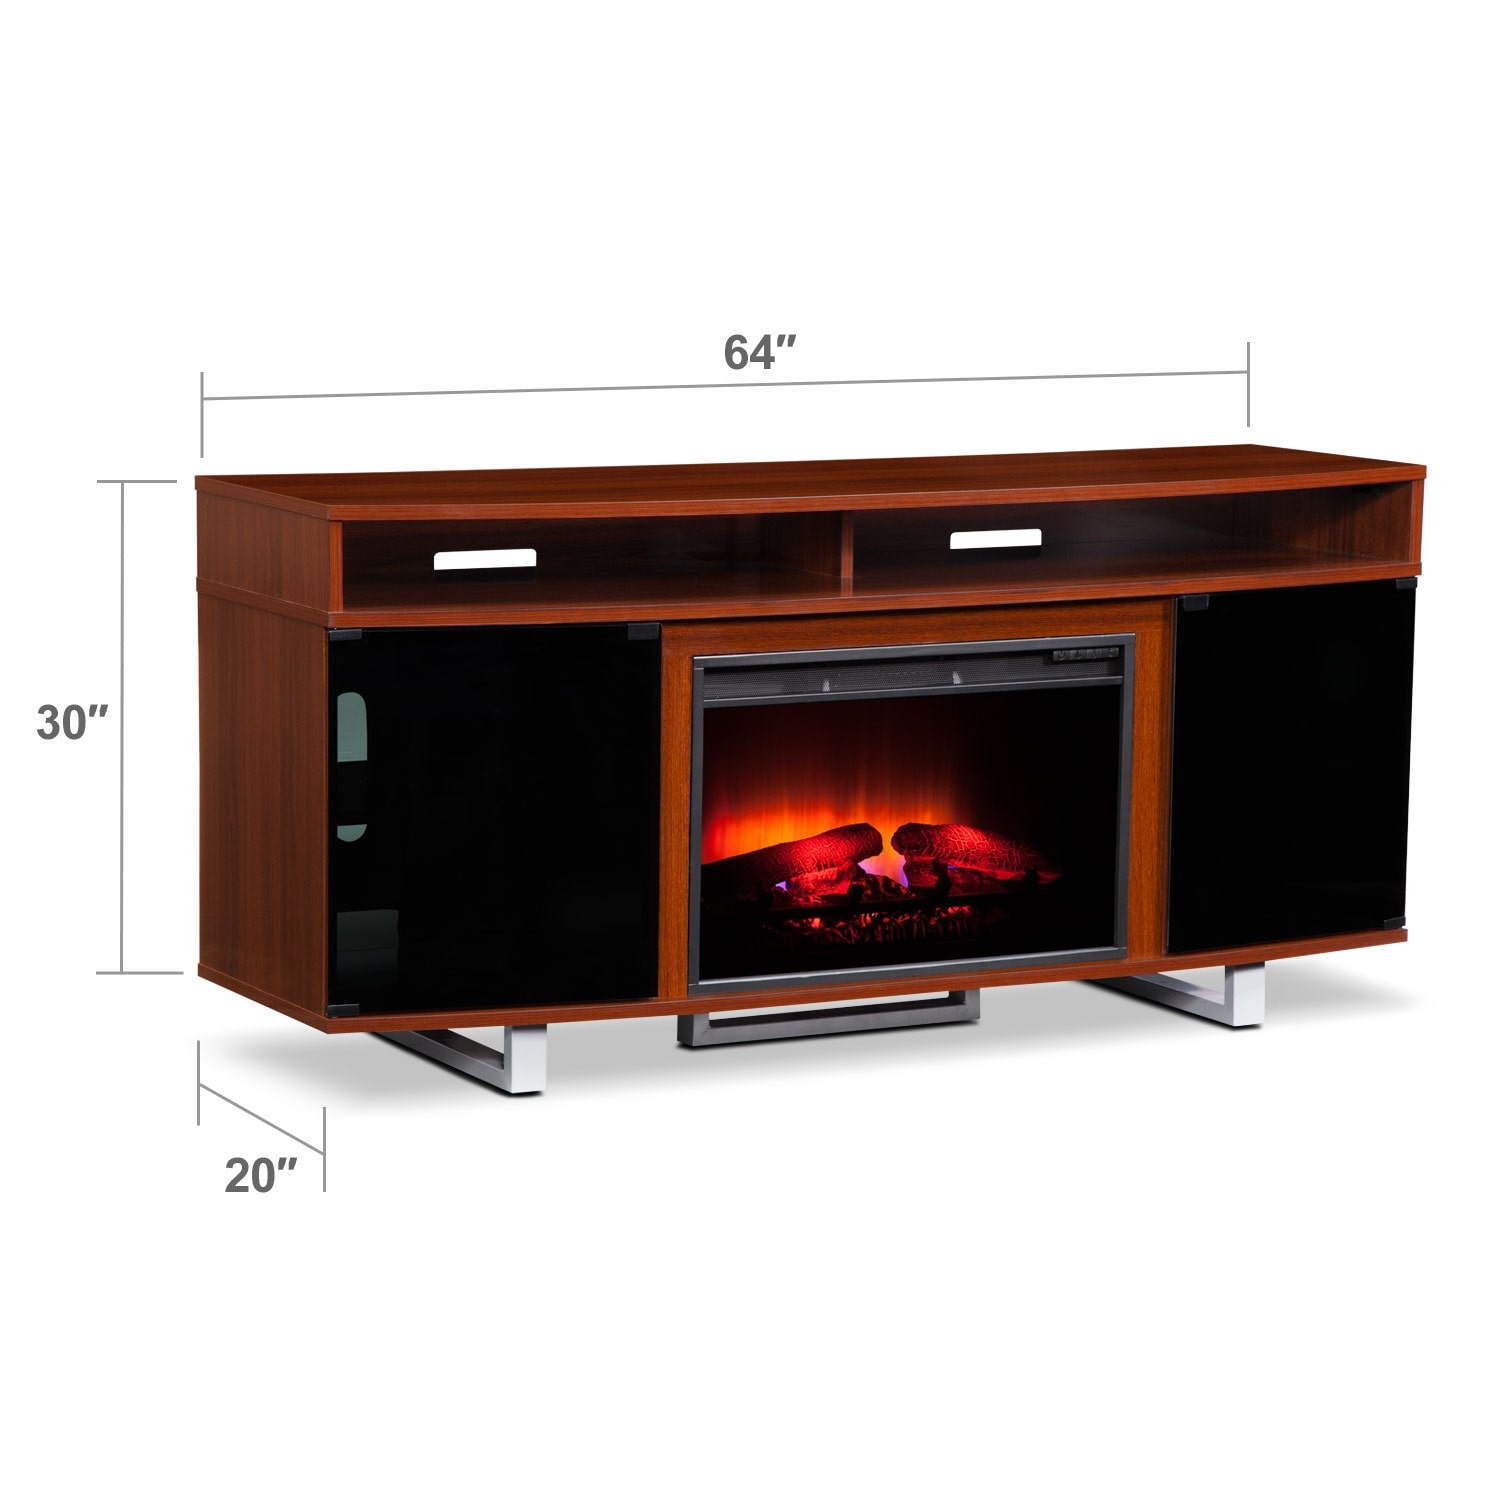 Pacer 64 Traditional Fireplace Tv Stand Cherry Value City Furniture